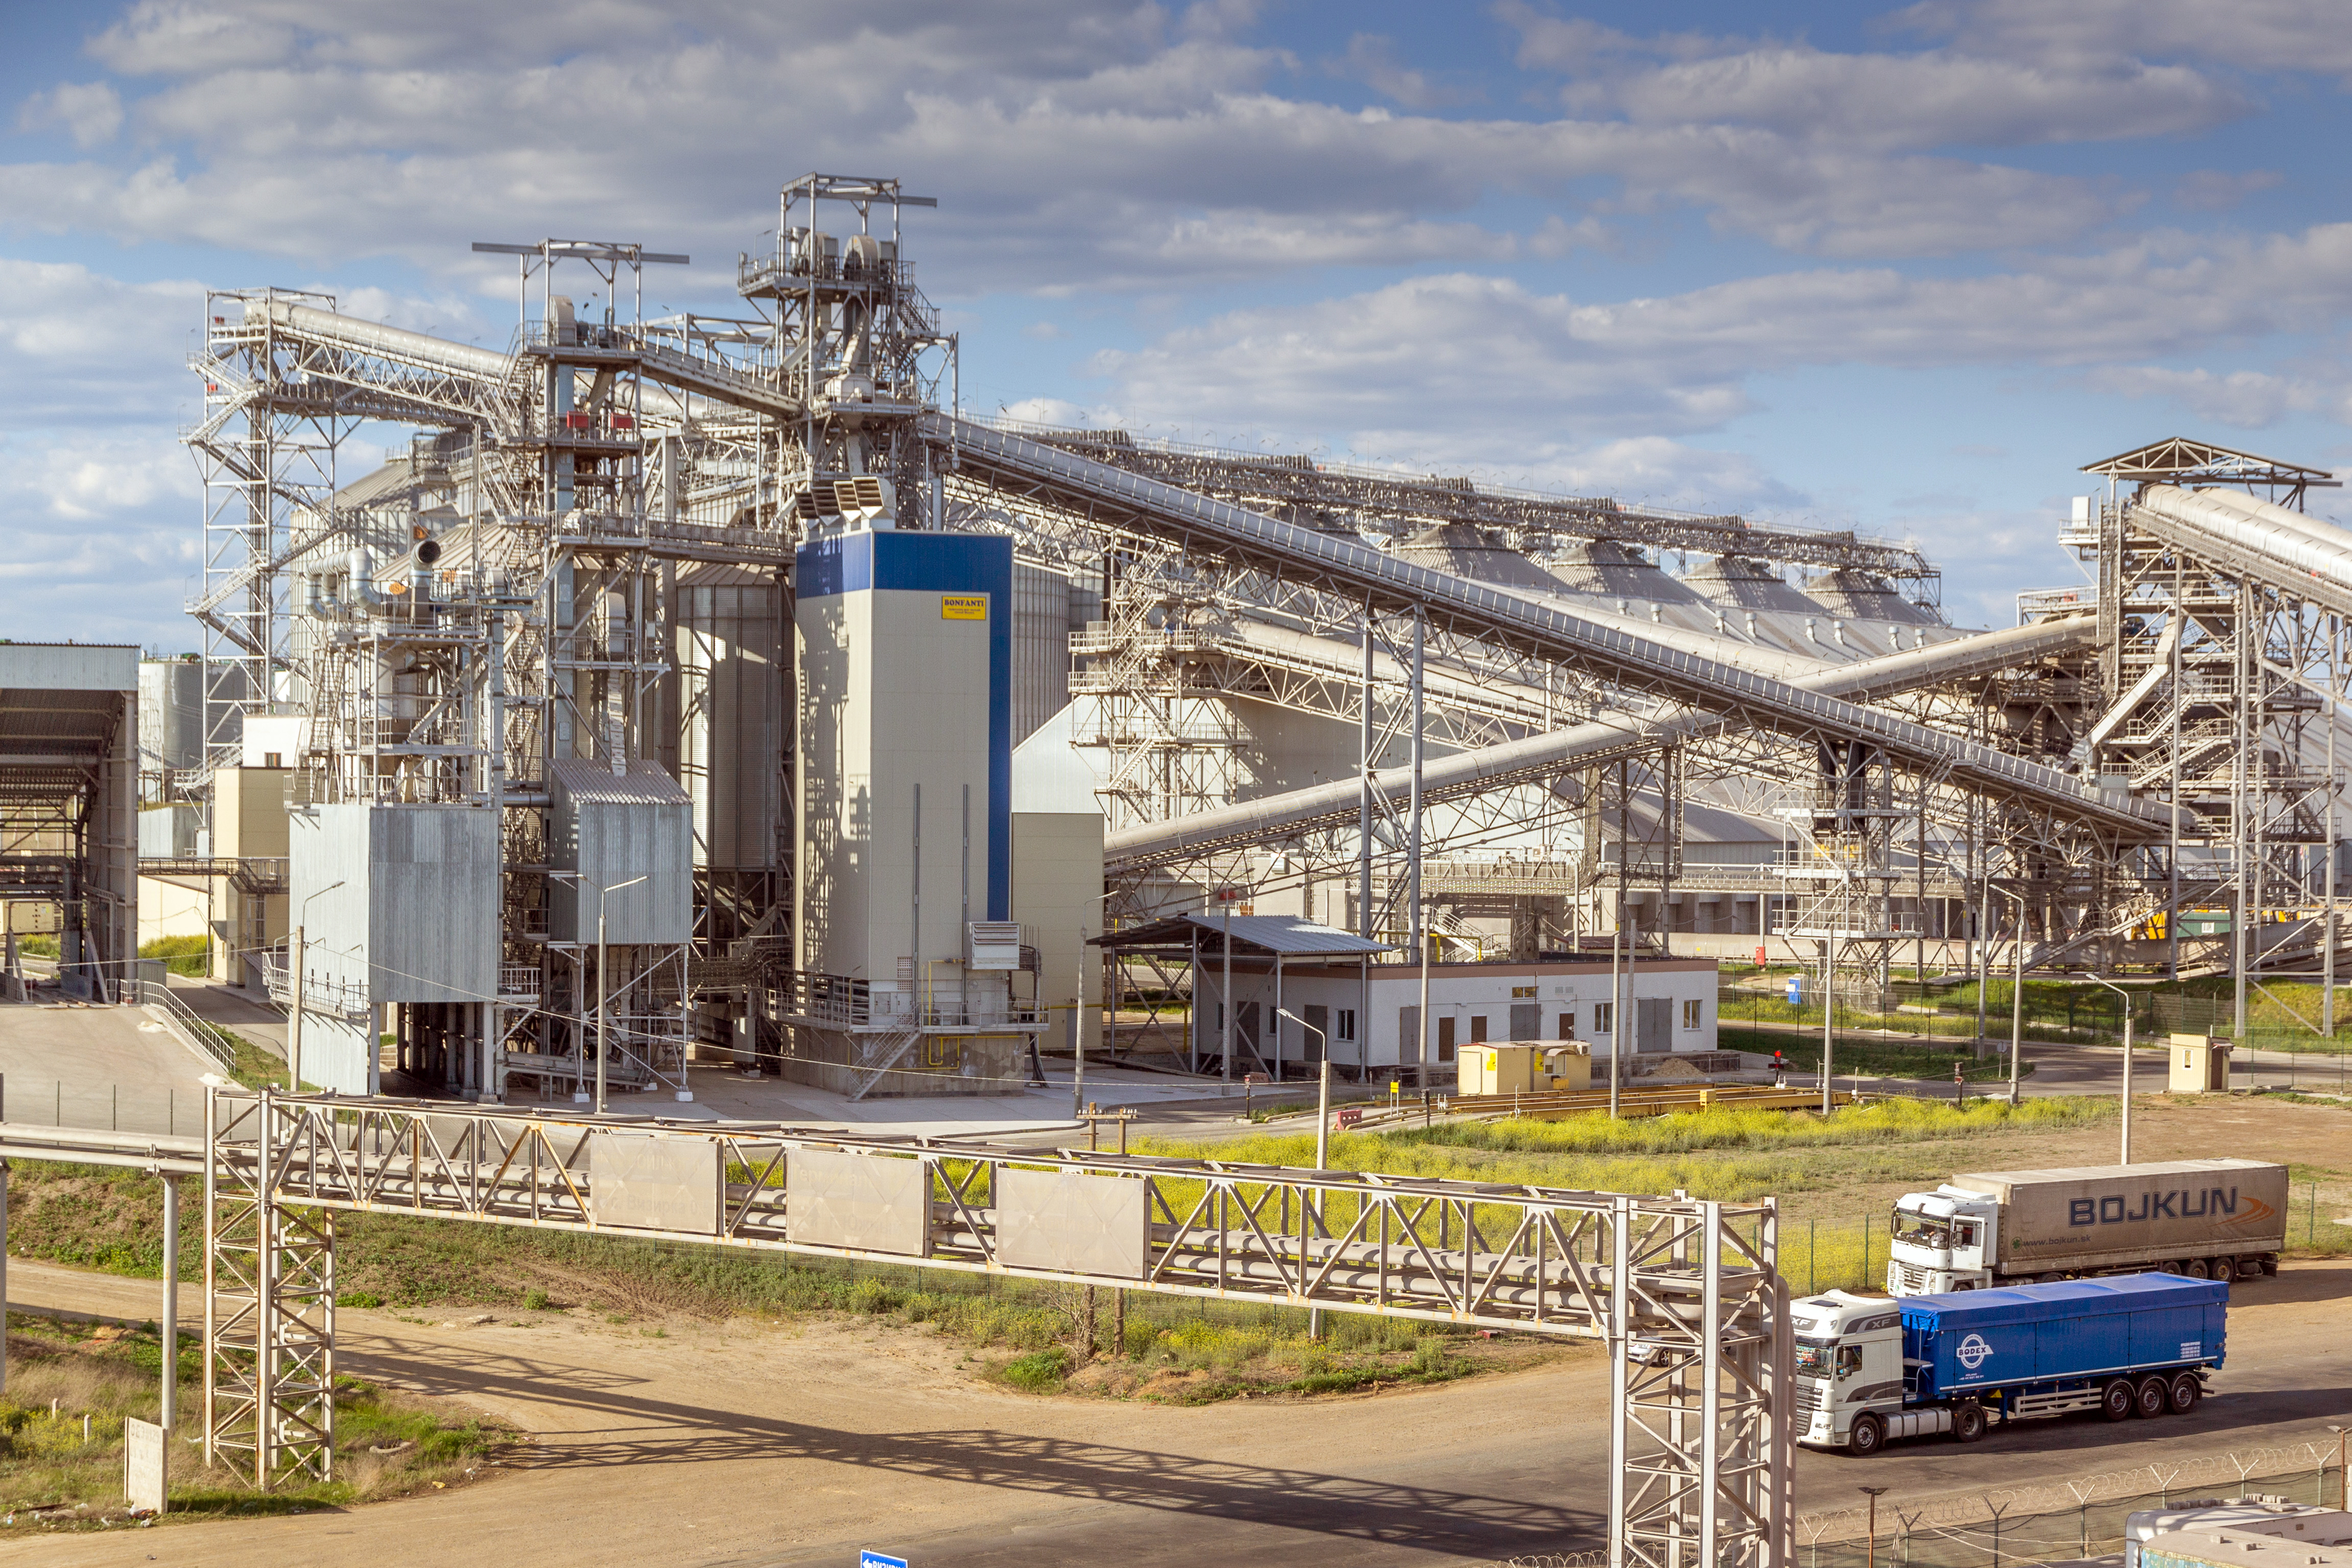 Bonfanti grain dryer, one of the most up-to-date models from the world's best manufacturer